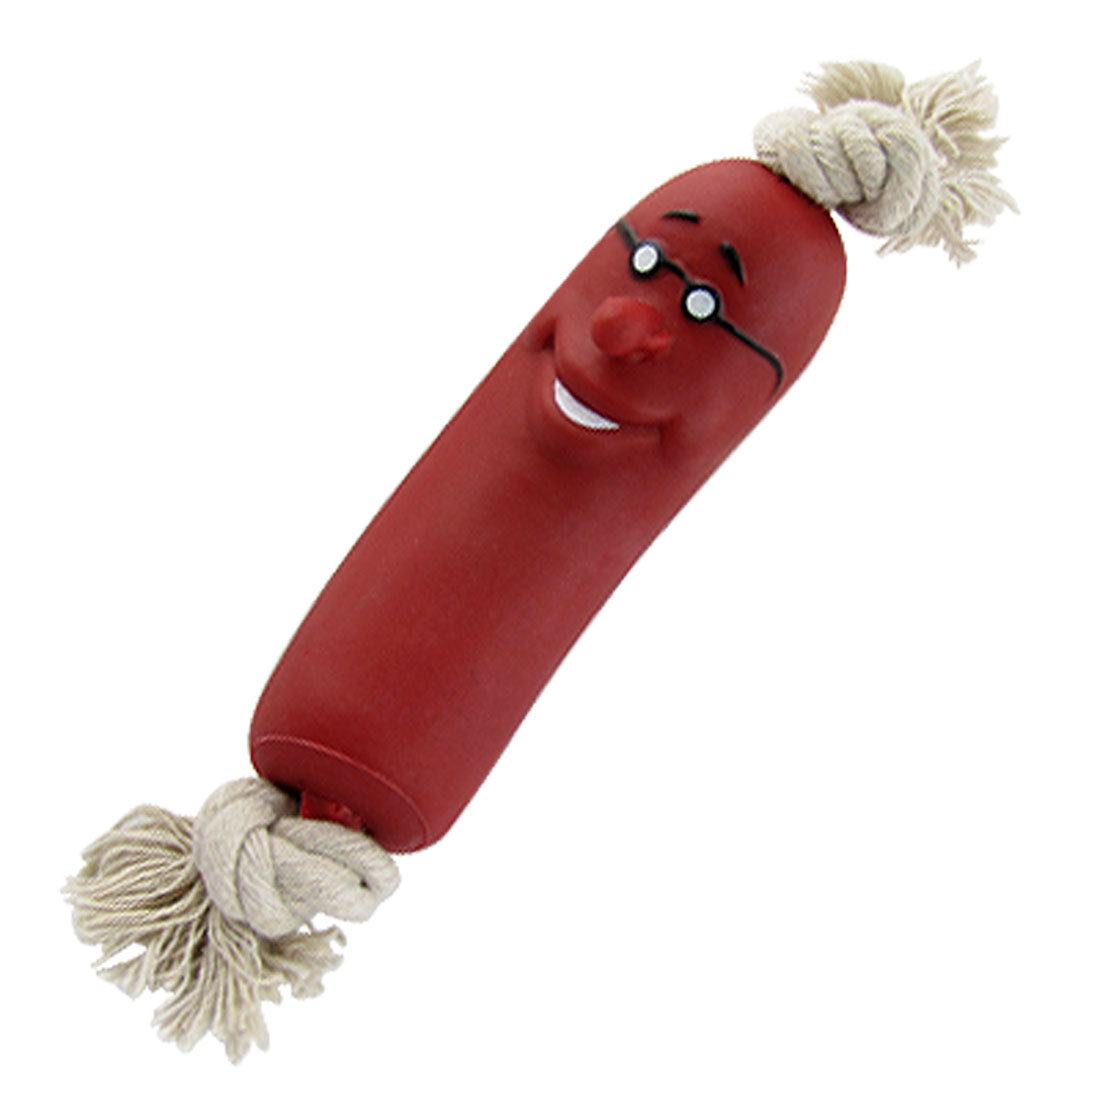 Pet Doggie Red Vinyl Smiling Sausage Chew Toy with Rope